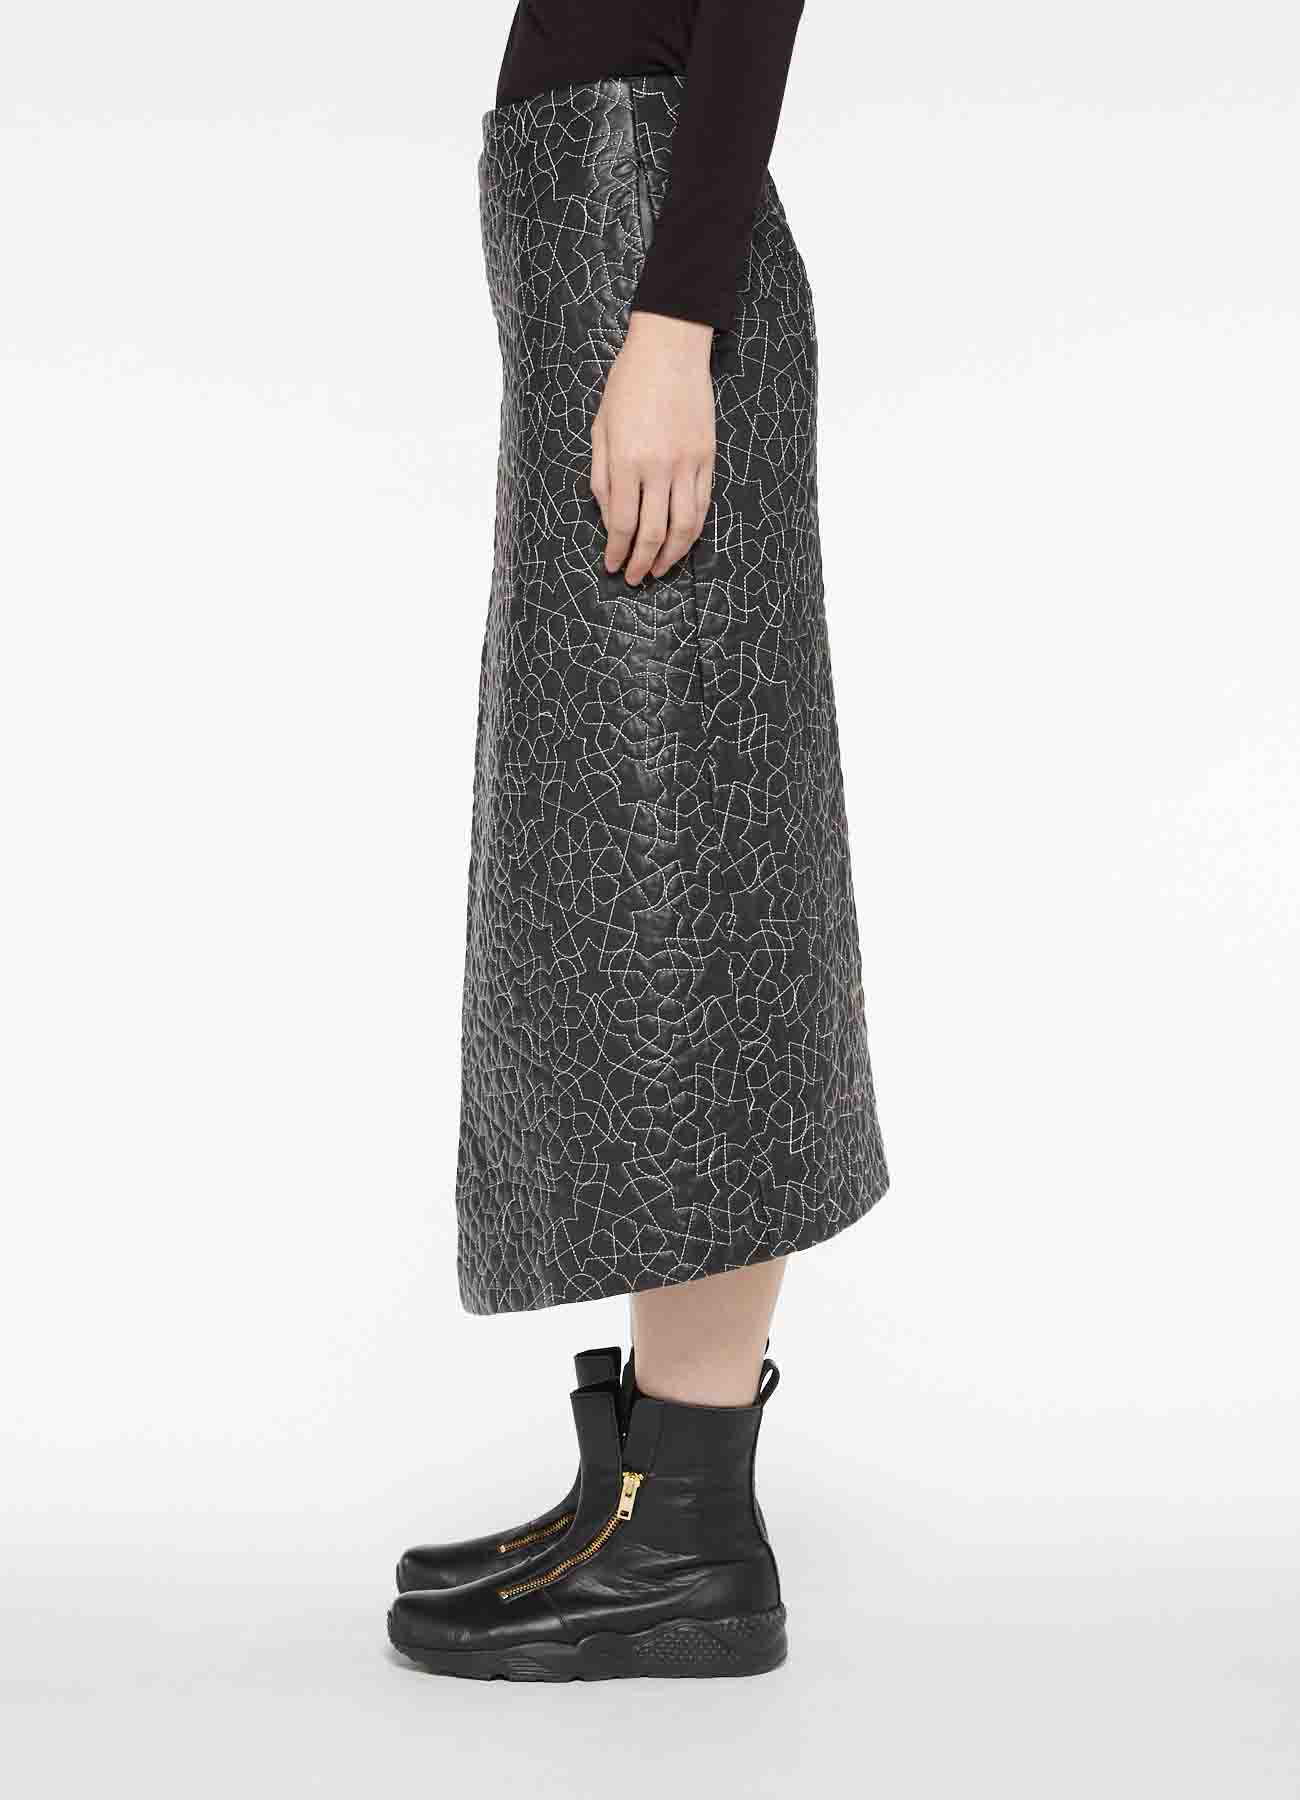 SHEEP SKIN INSULATED QUILTING WRAPPED SKIRT